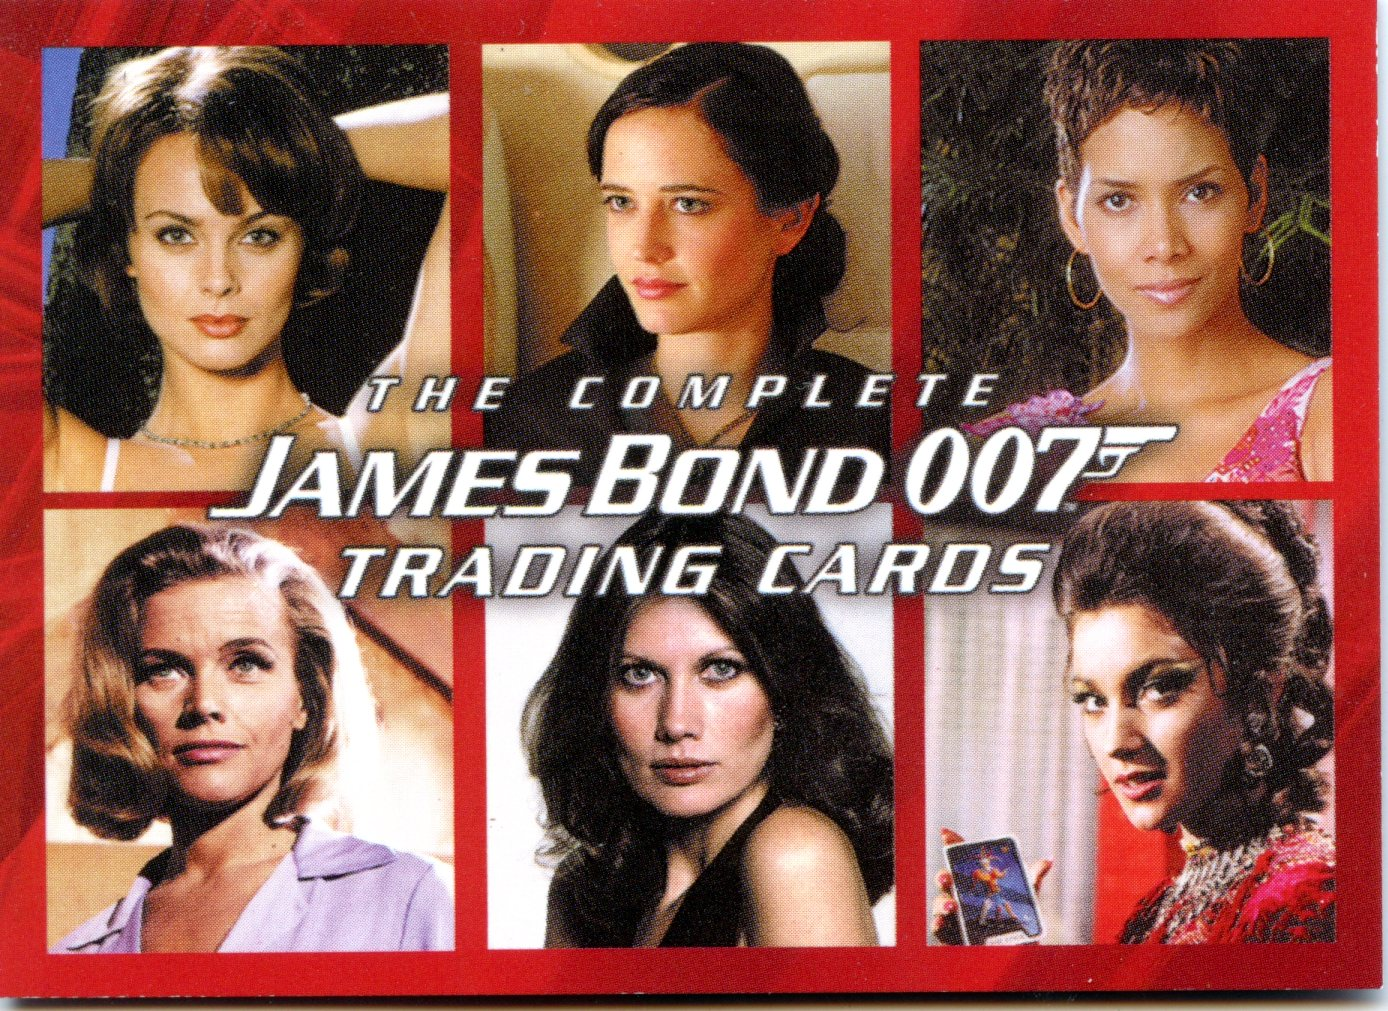 The Complete James Bond 2007